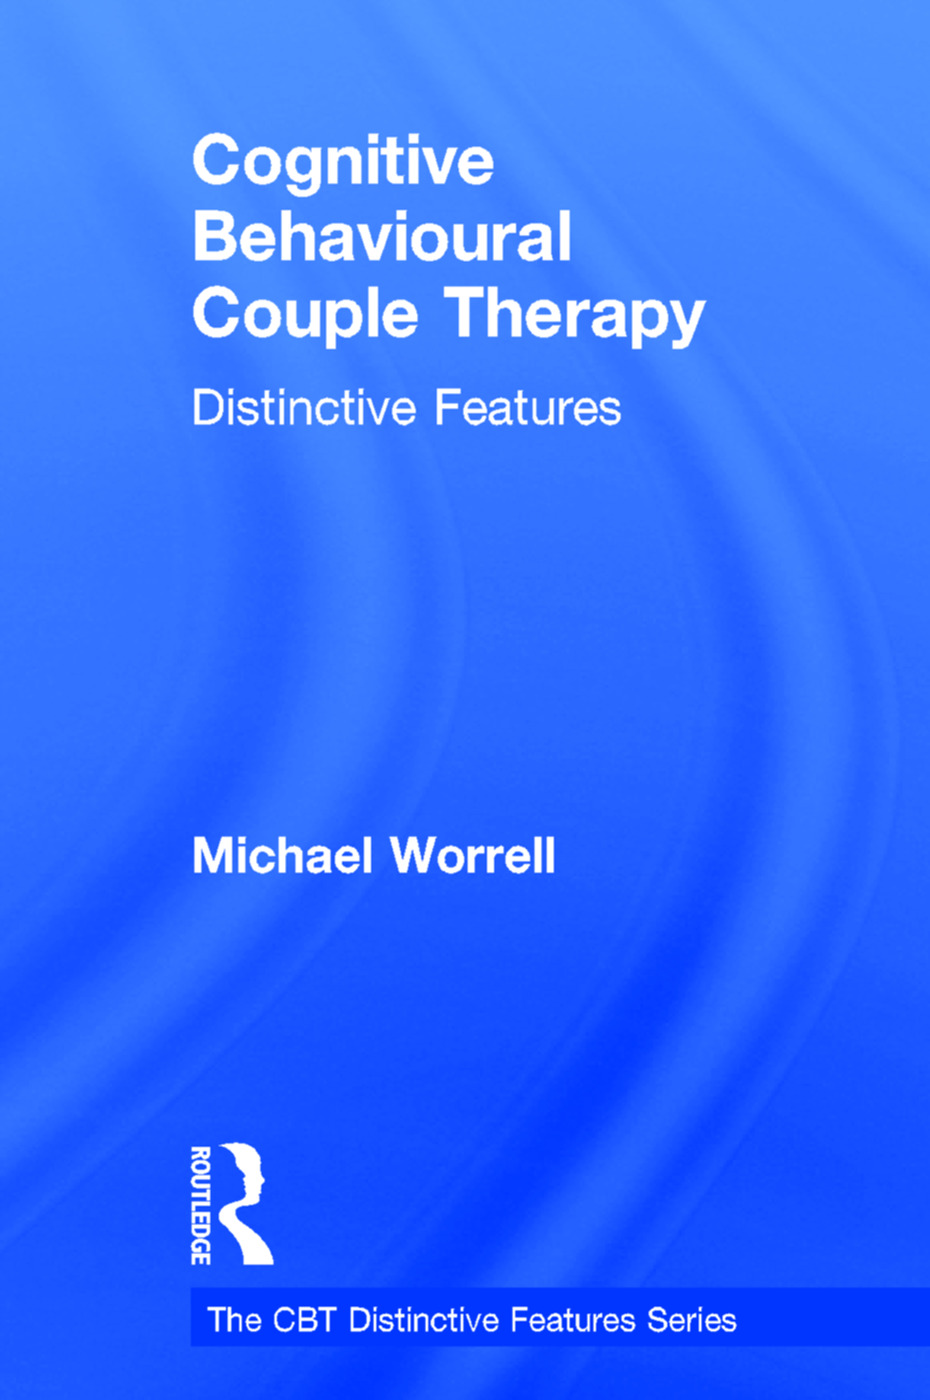 A distinctive focus: couple relationships and well-being